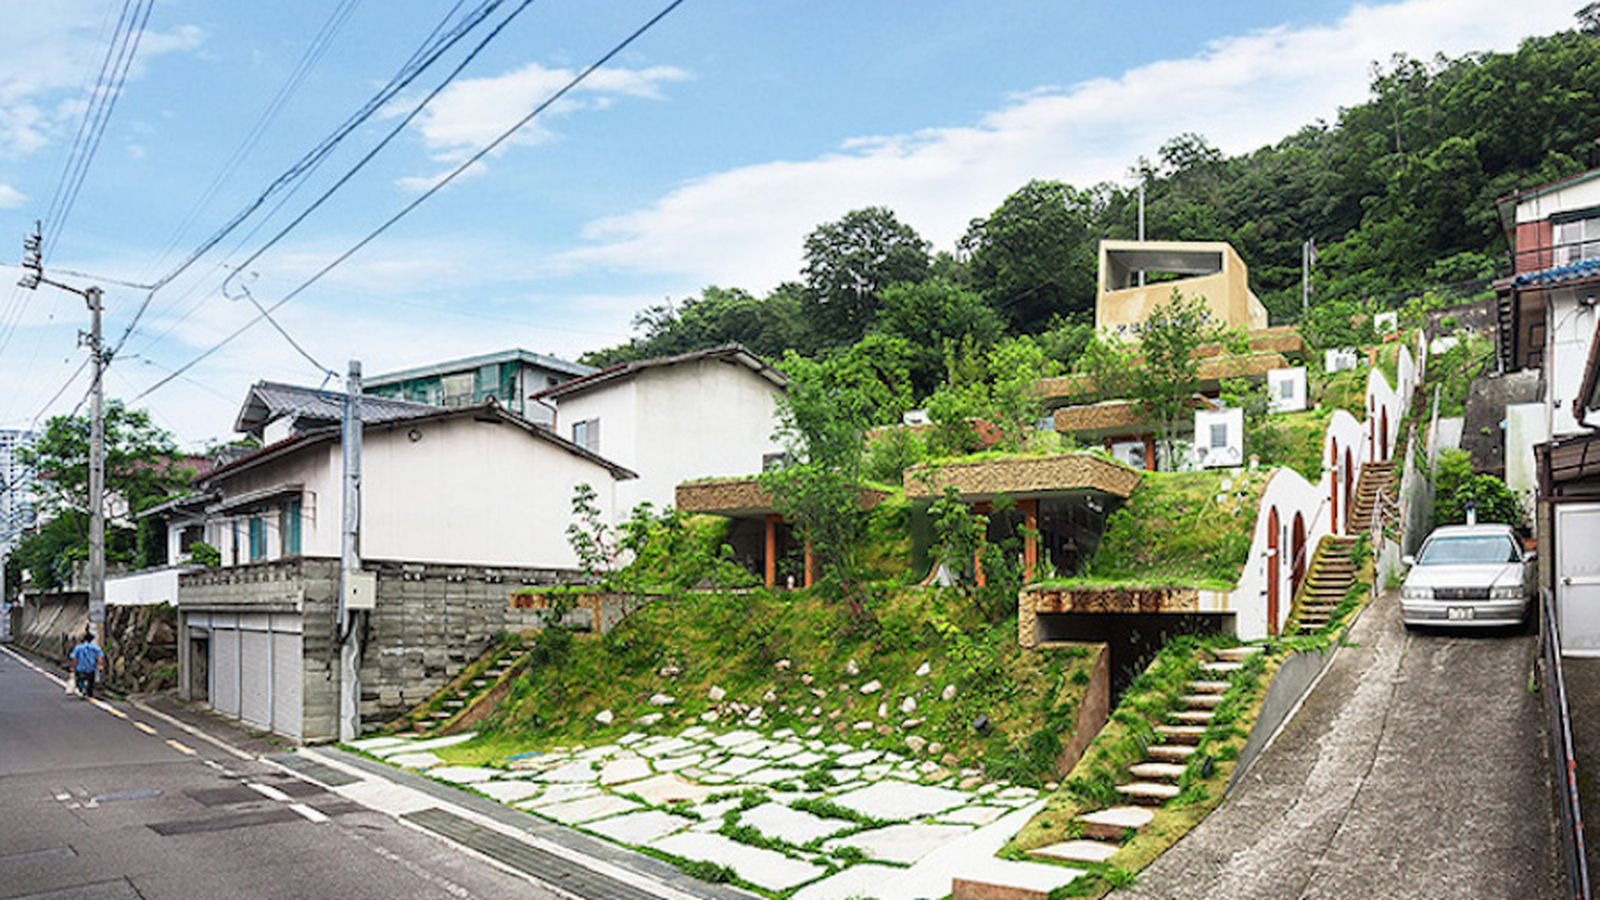 A hobbit style apartment building rises in japan curbed for Apartment design guide sepp 65